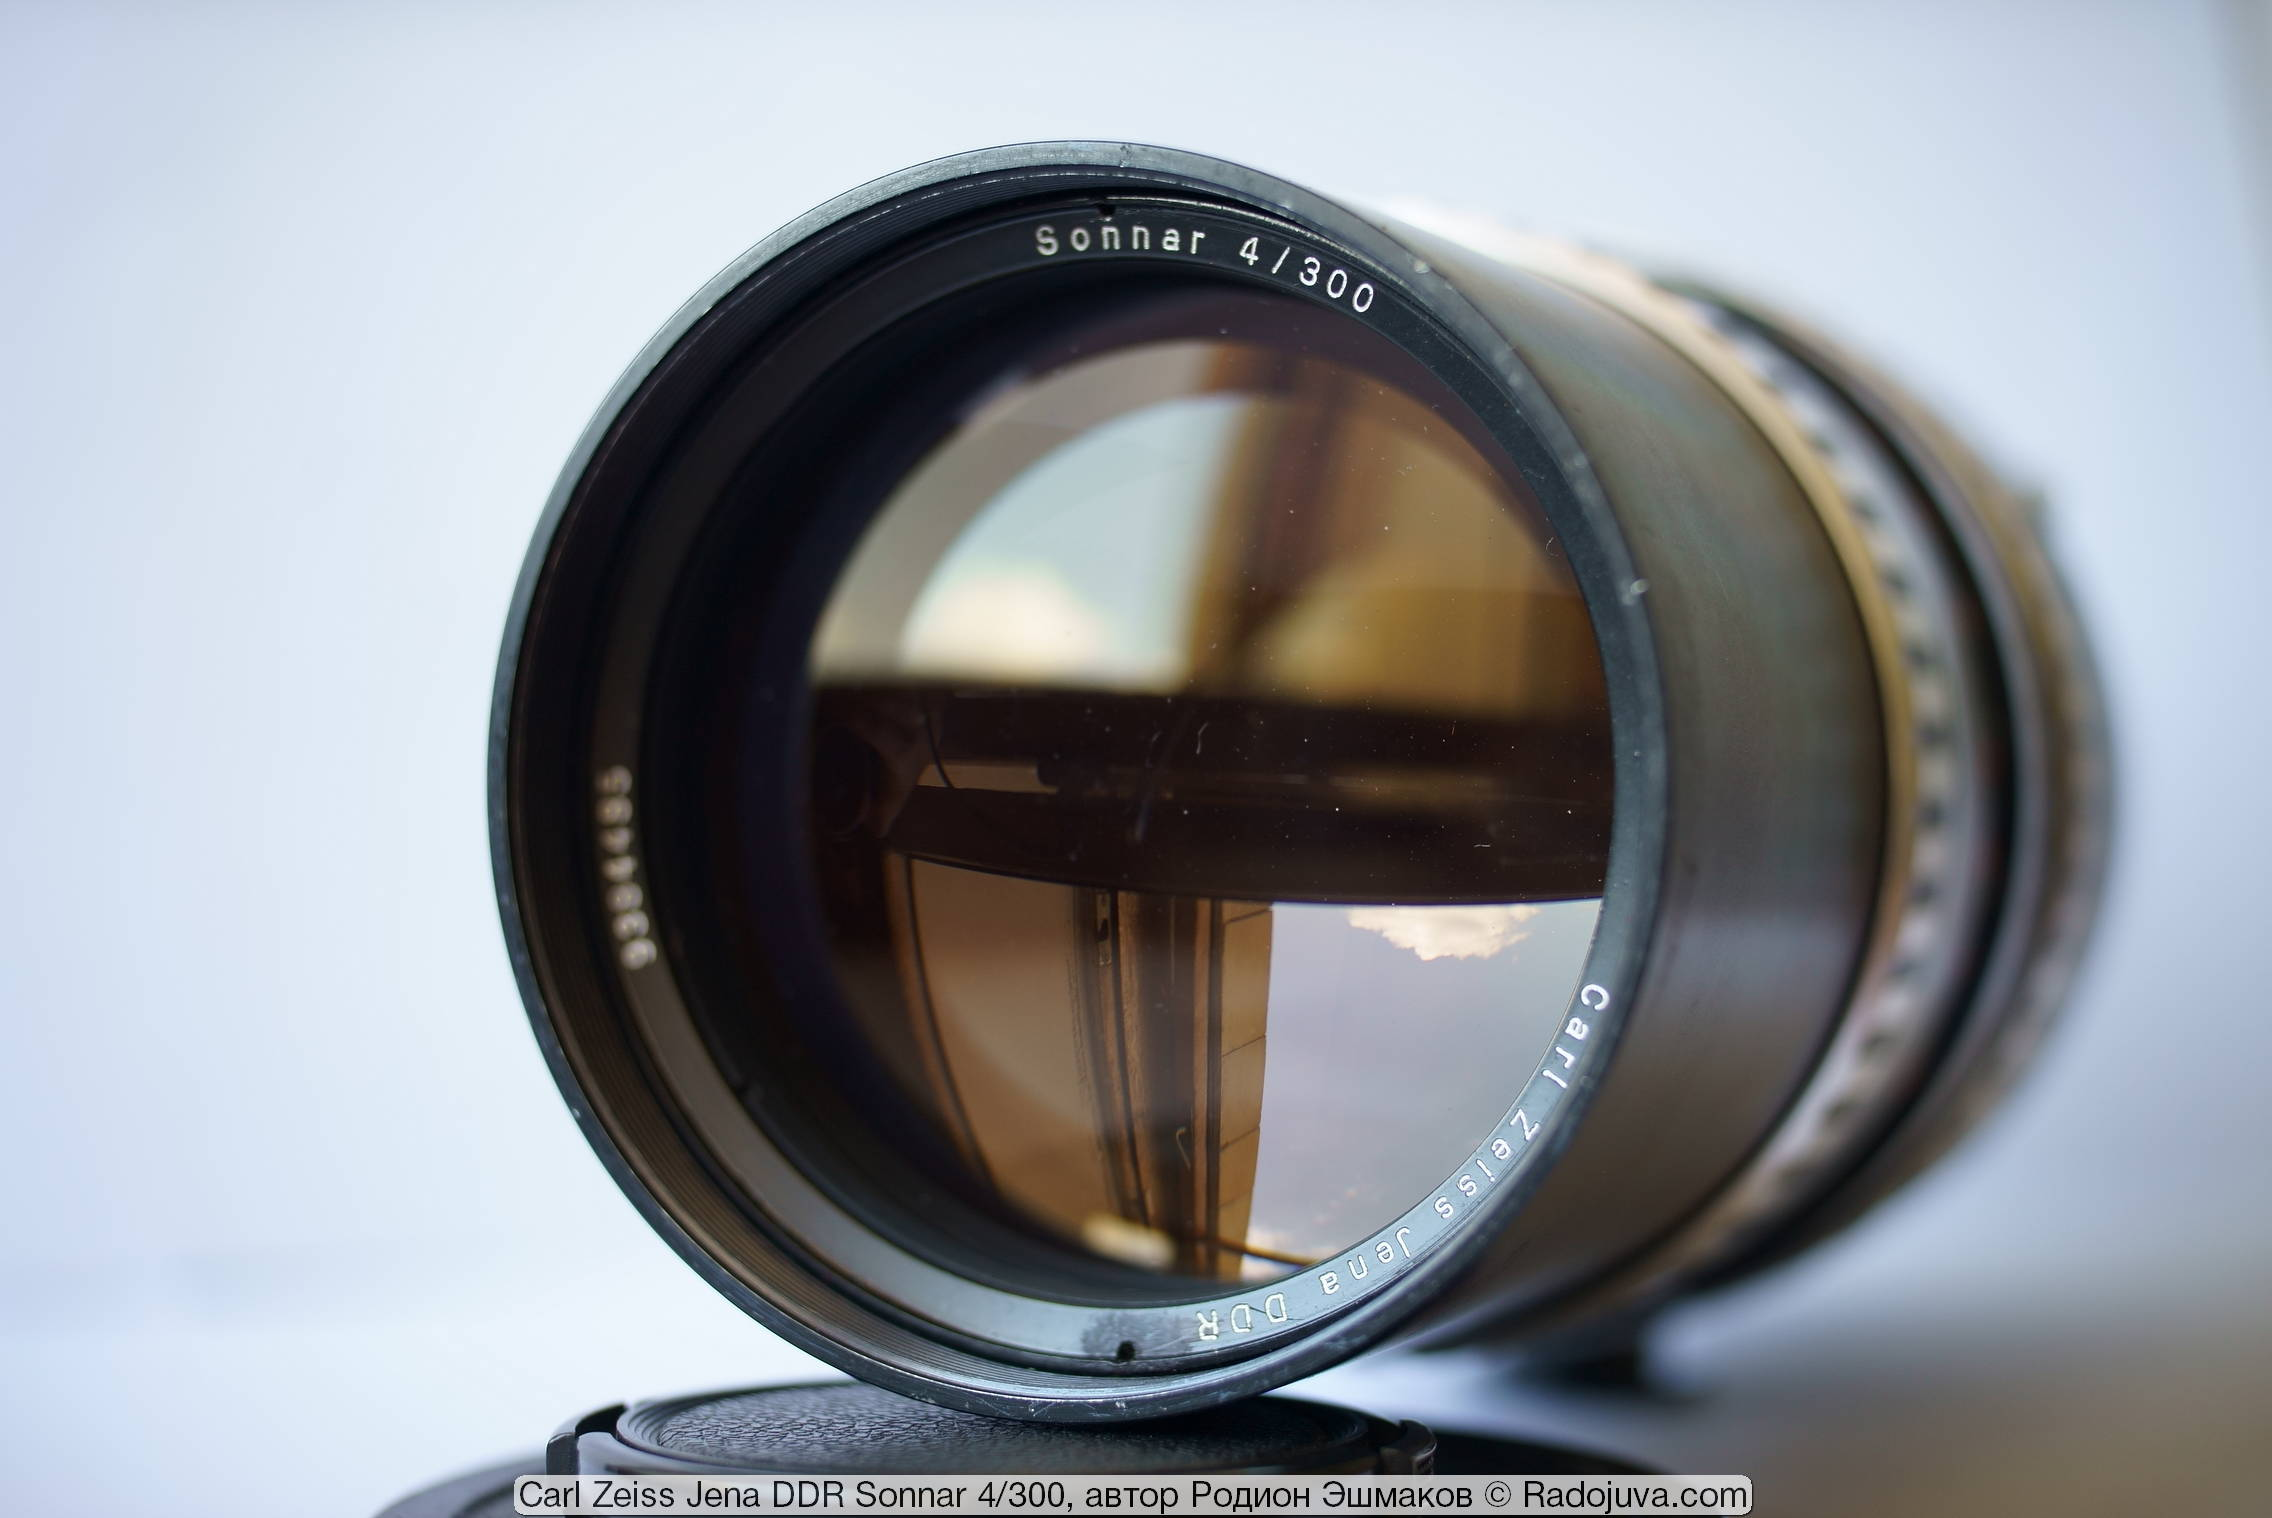 View of the Sonnar 4/300 from the front of the lens.